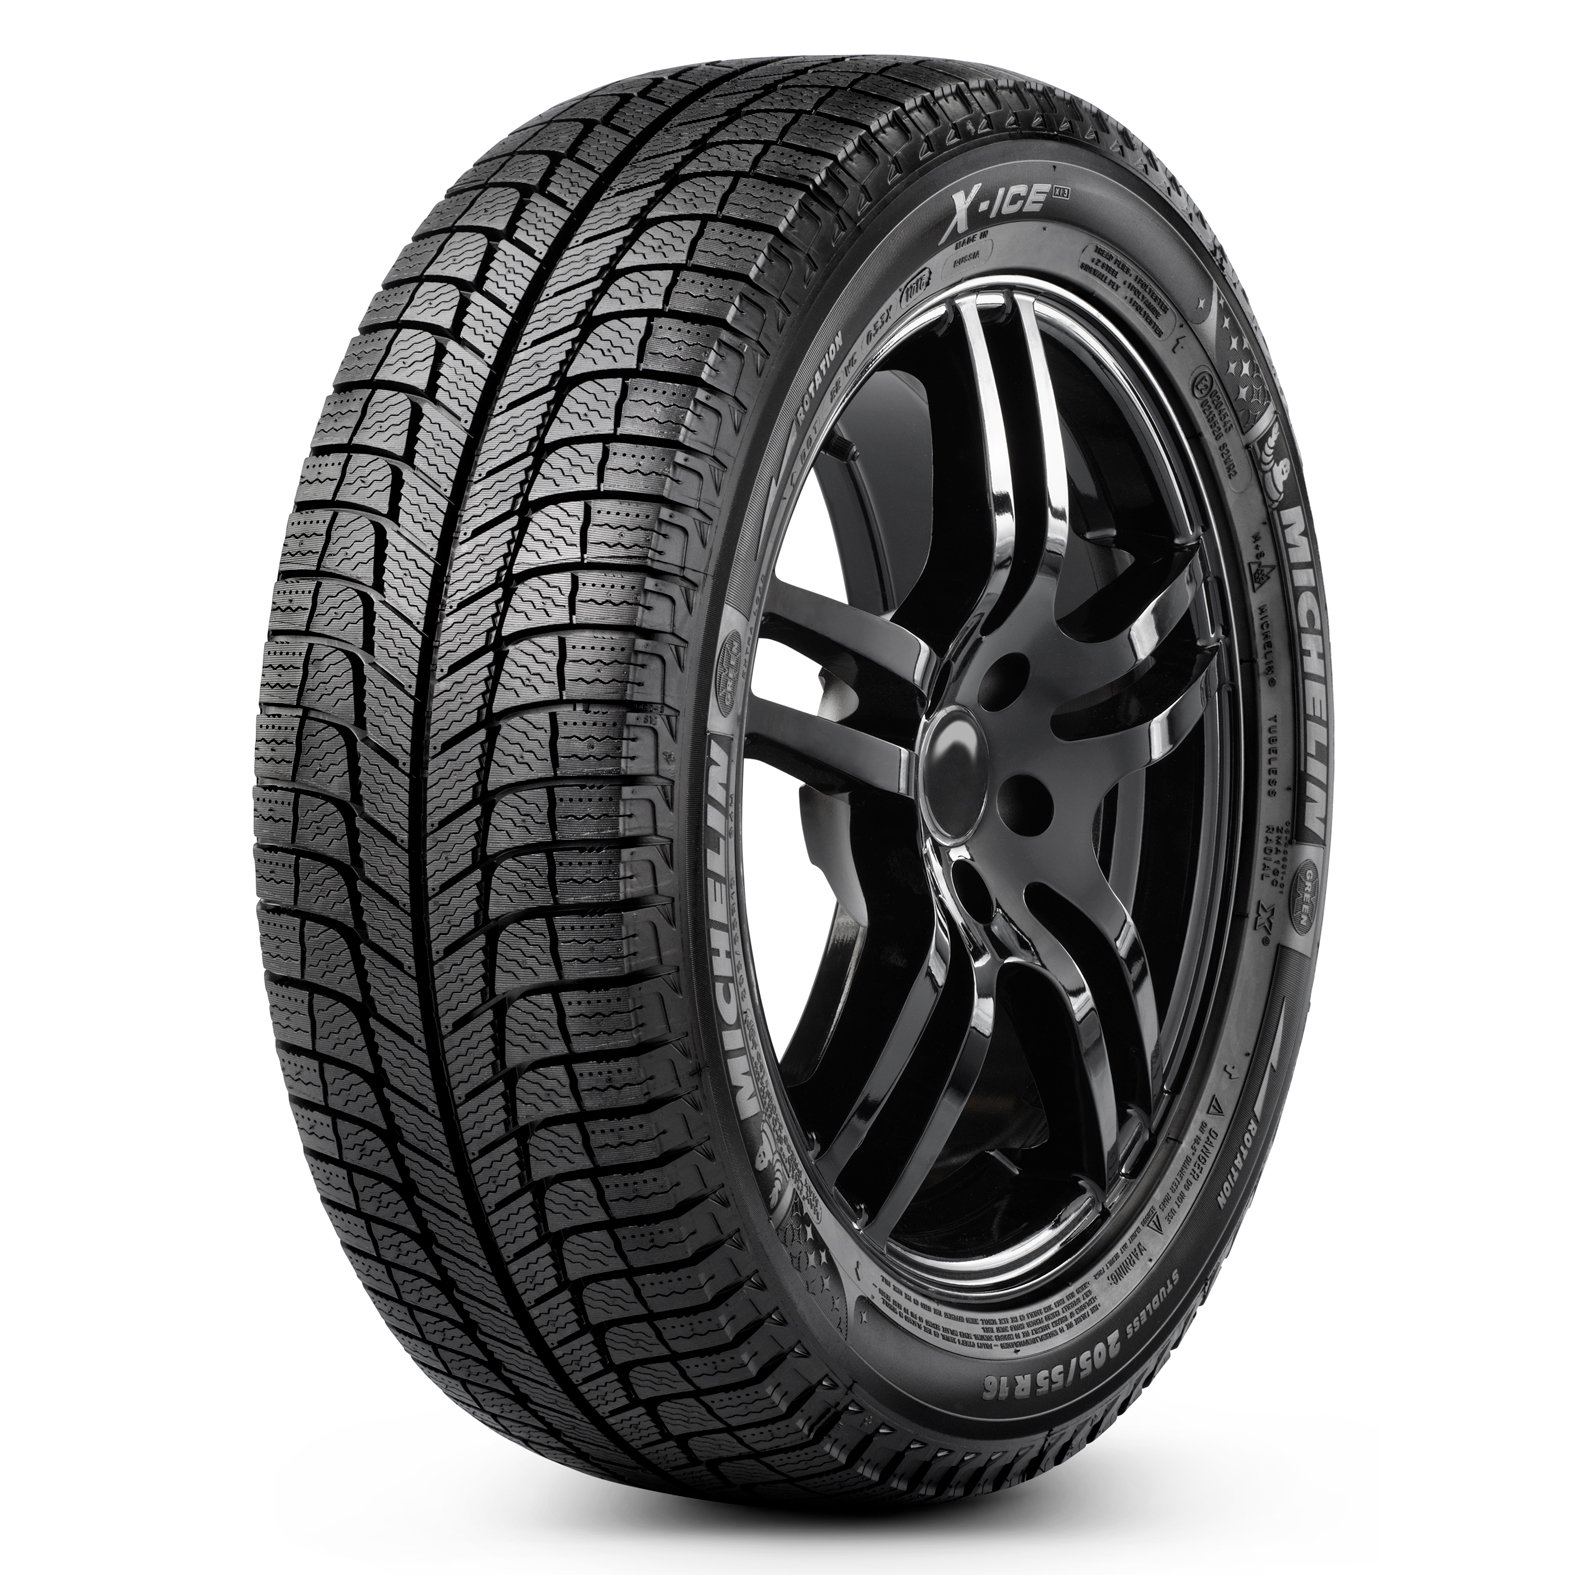 Michelin X-ICE XI3 tire - angle